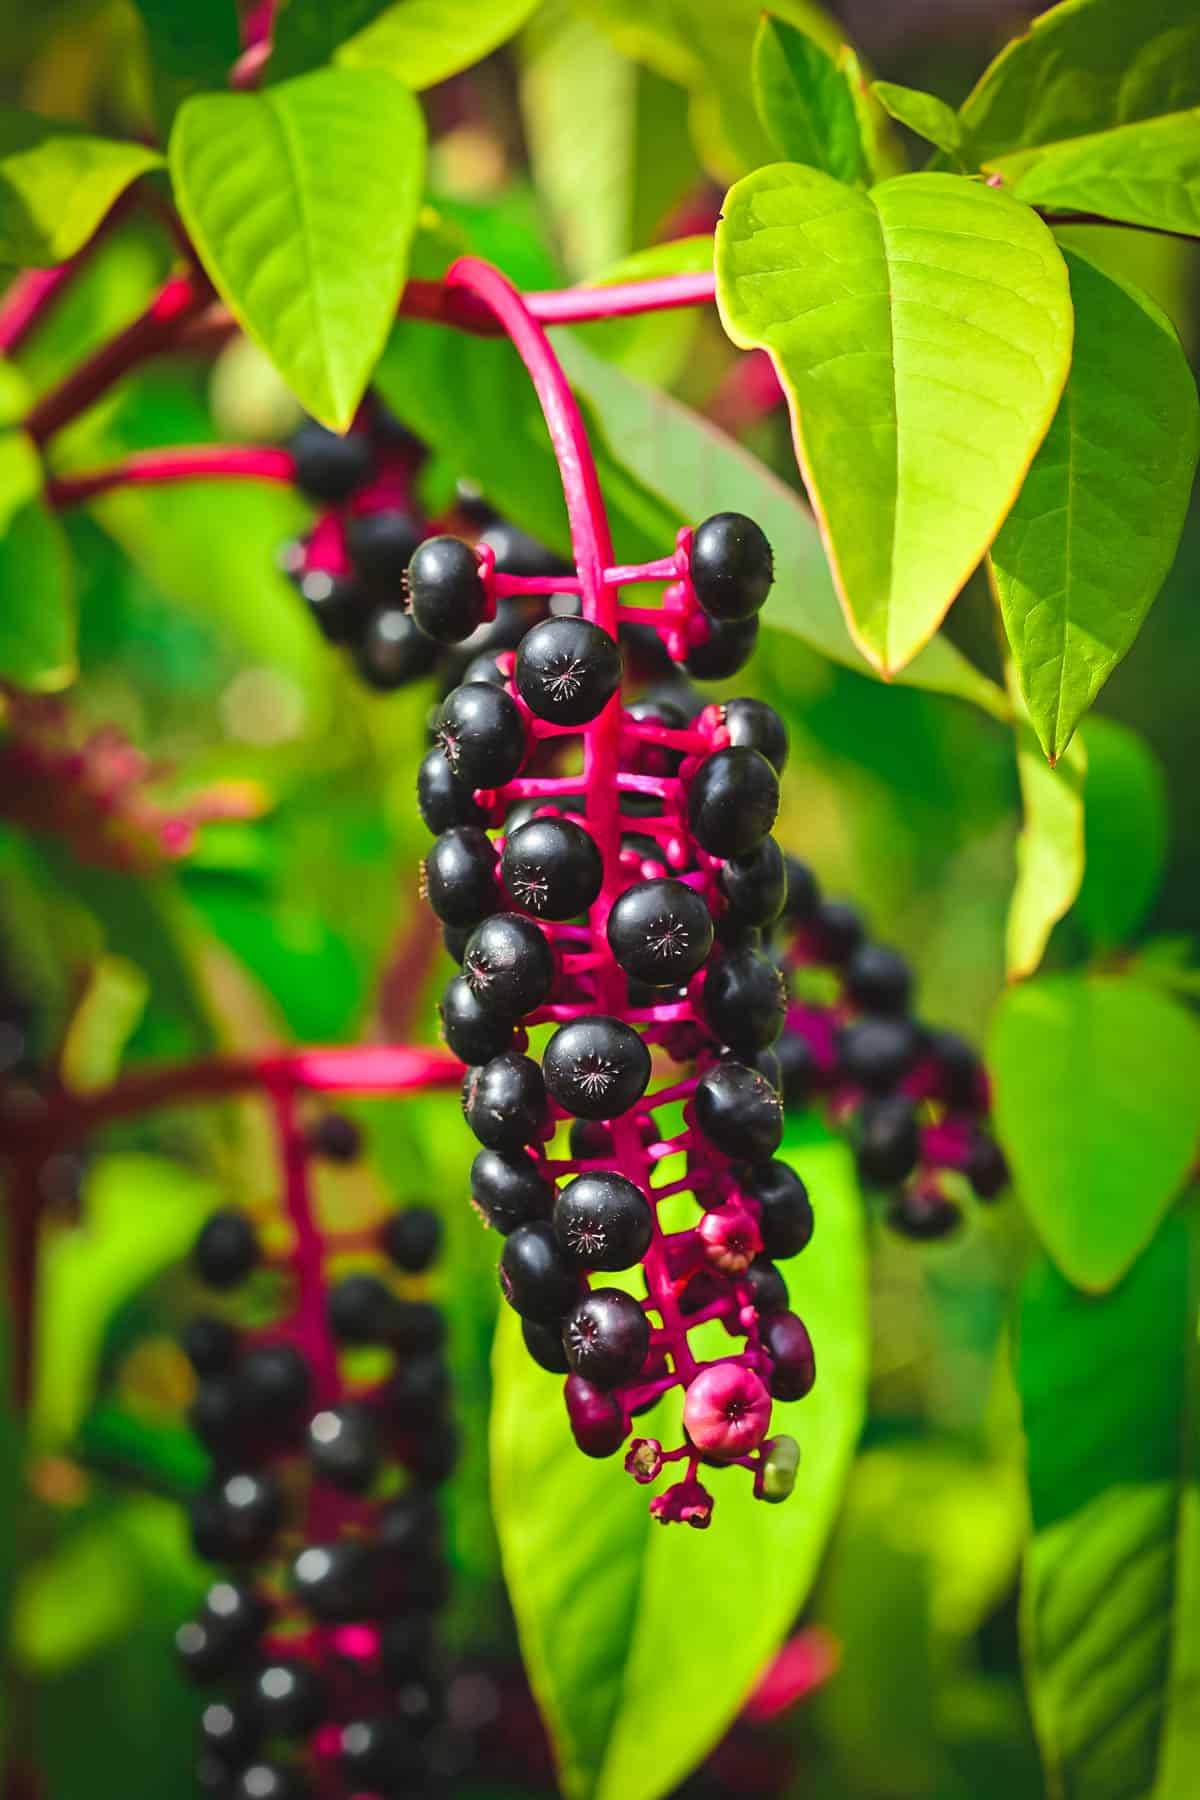 toxic pokeweed and pokeberries